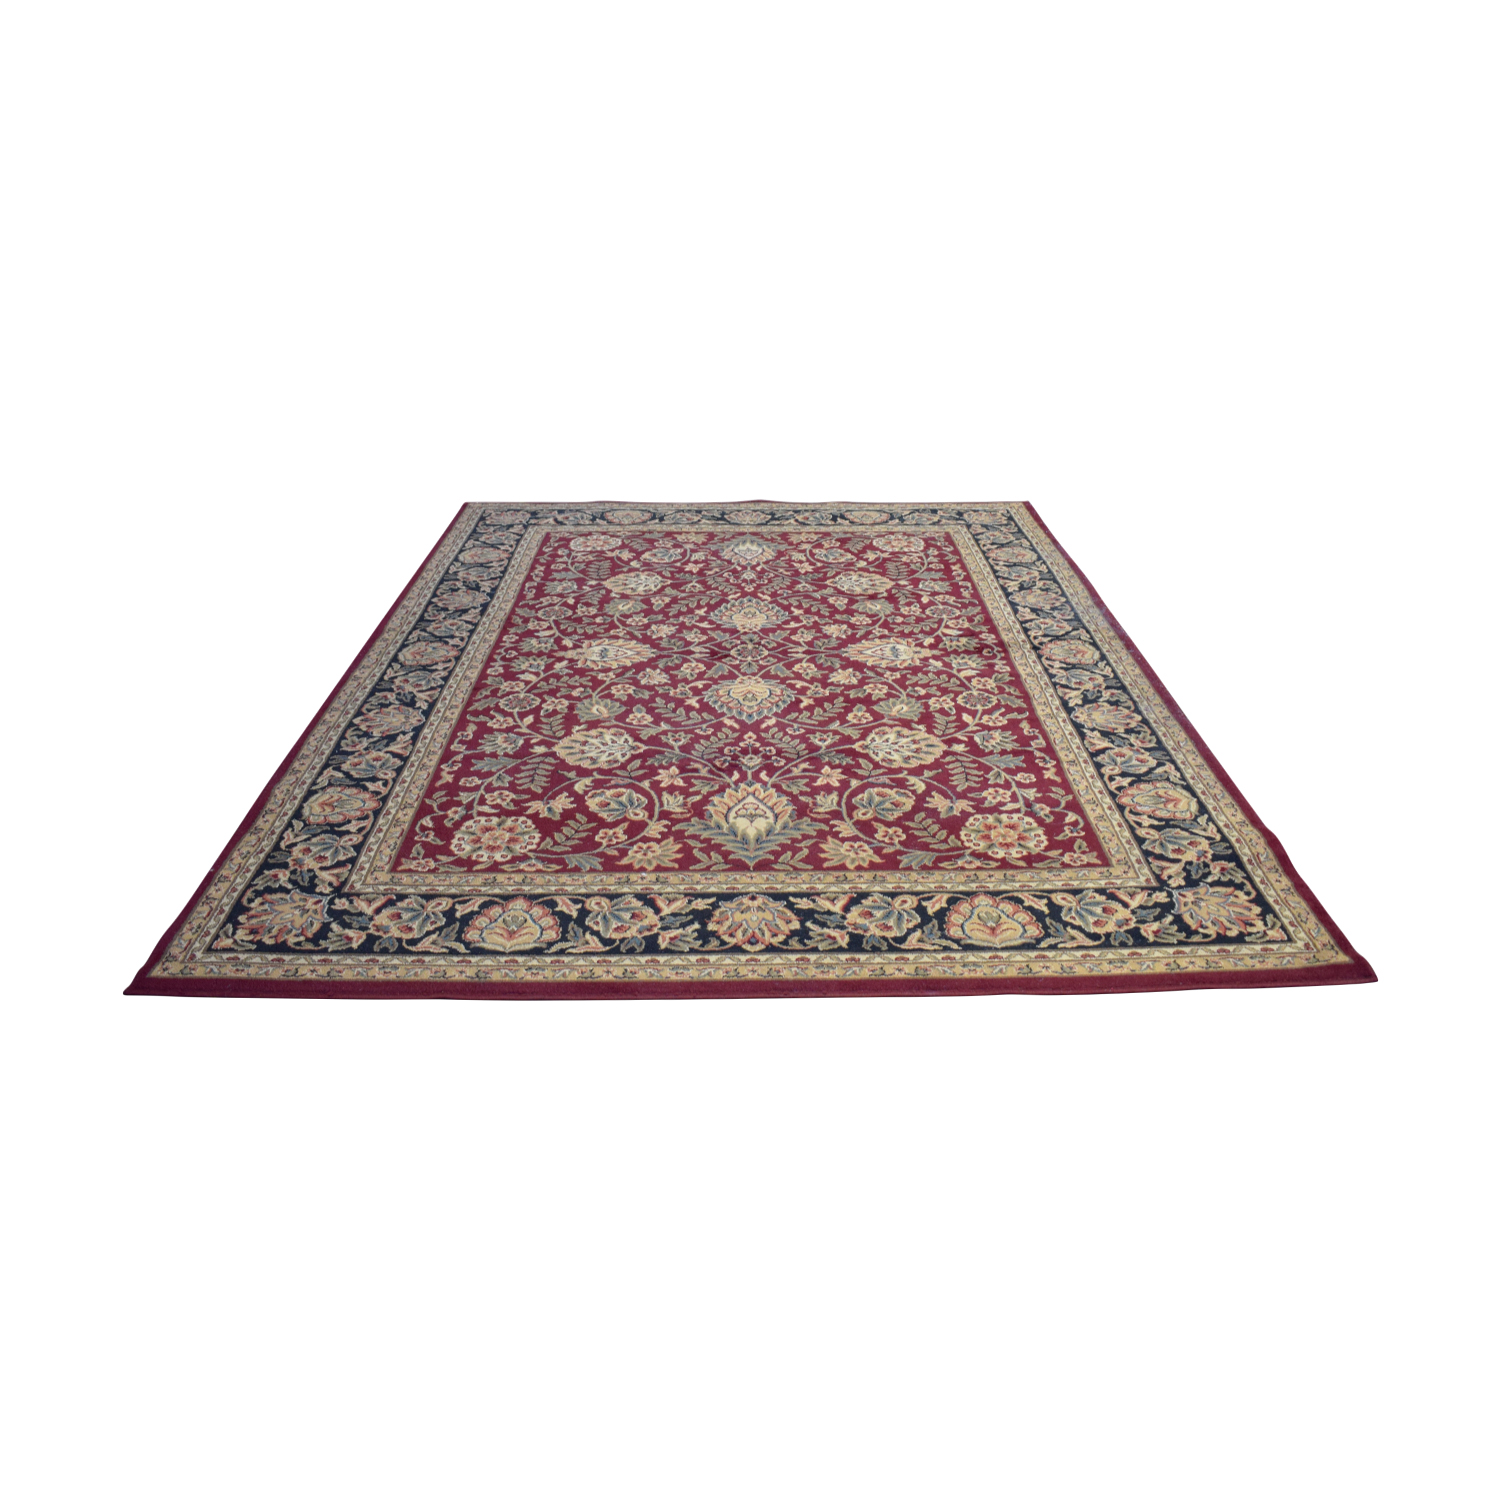 Home Depot Home Depot Burgundy Multi-Colored Rug coupon